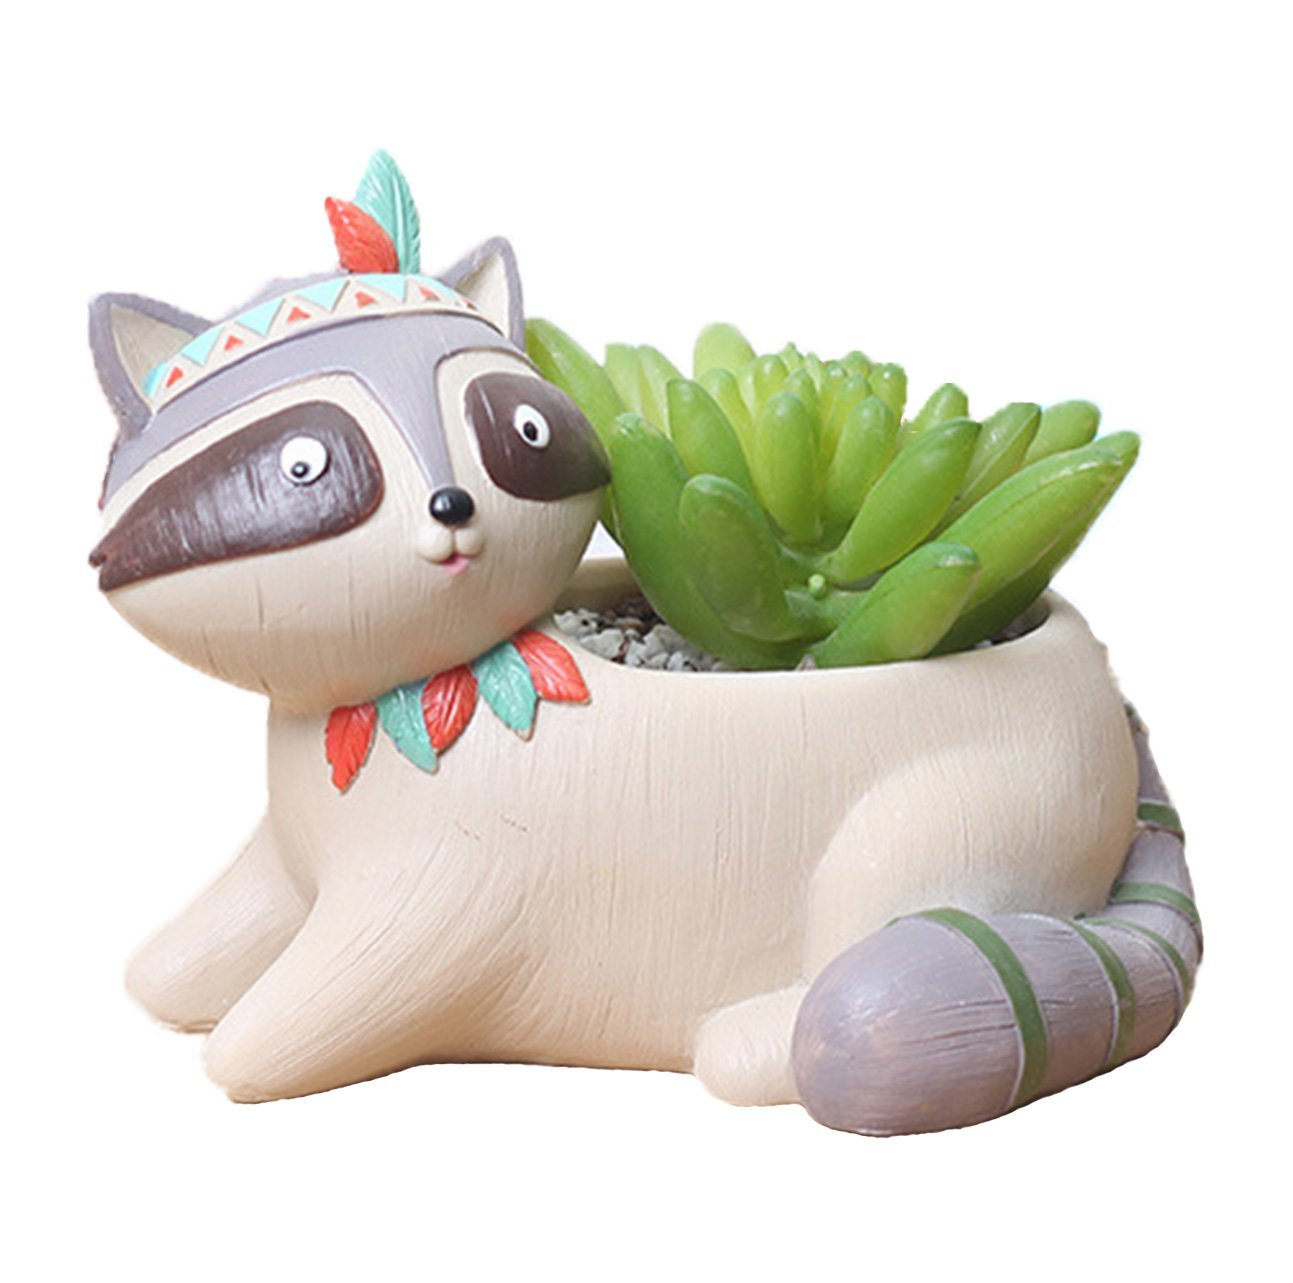 Youfui Home Decor Pot, Animal Succulent Planter Flowerpot for Home Office Desk Decoration (Lively Raccoon)